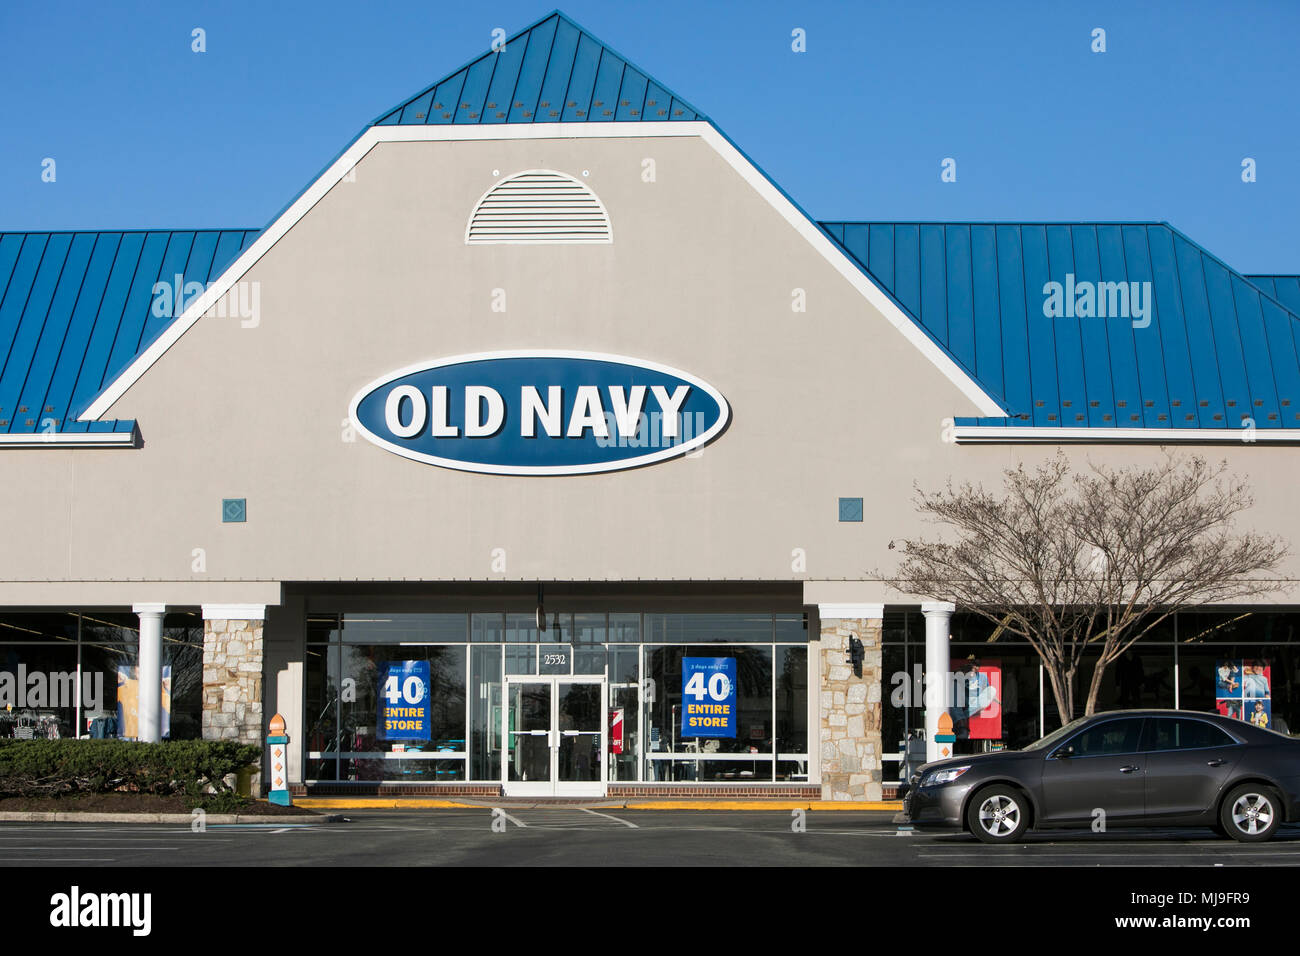 A logo sign outside of a Old Navy retail store in Annapolis, Maryland on April 29, 2018. - Stock Image